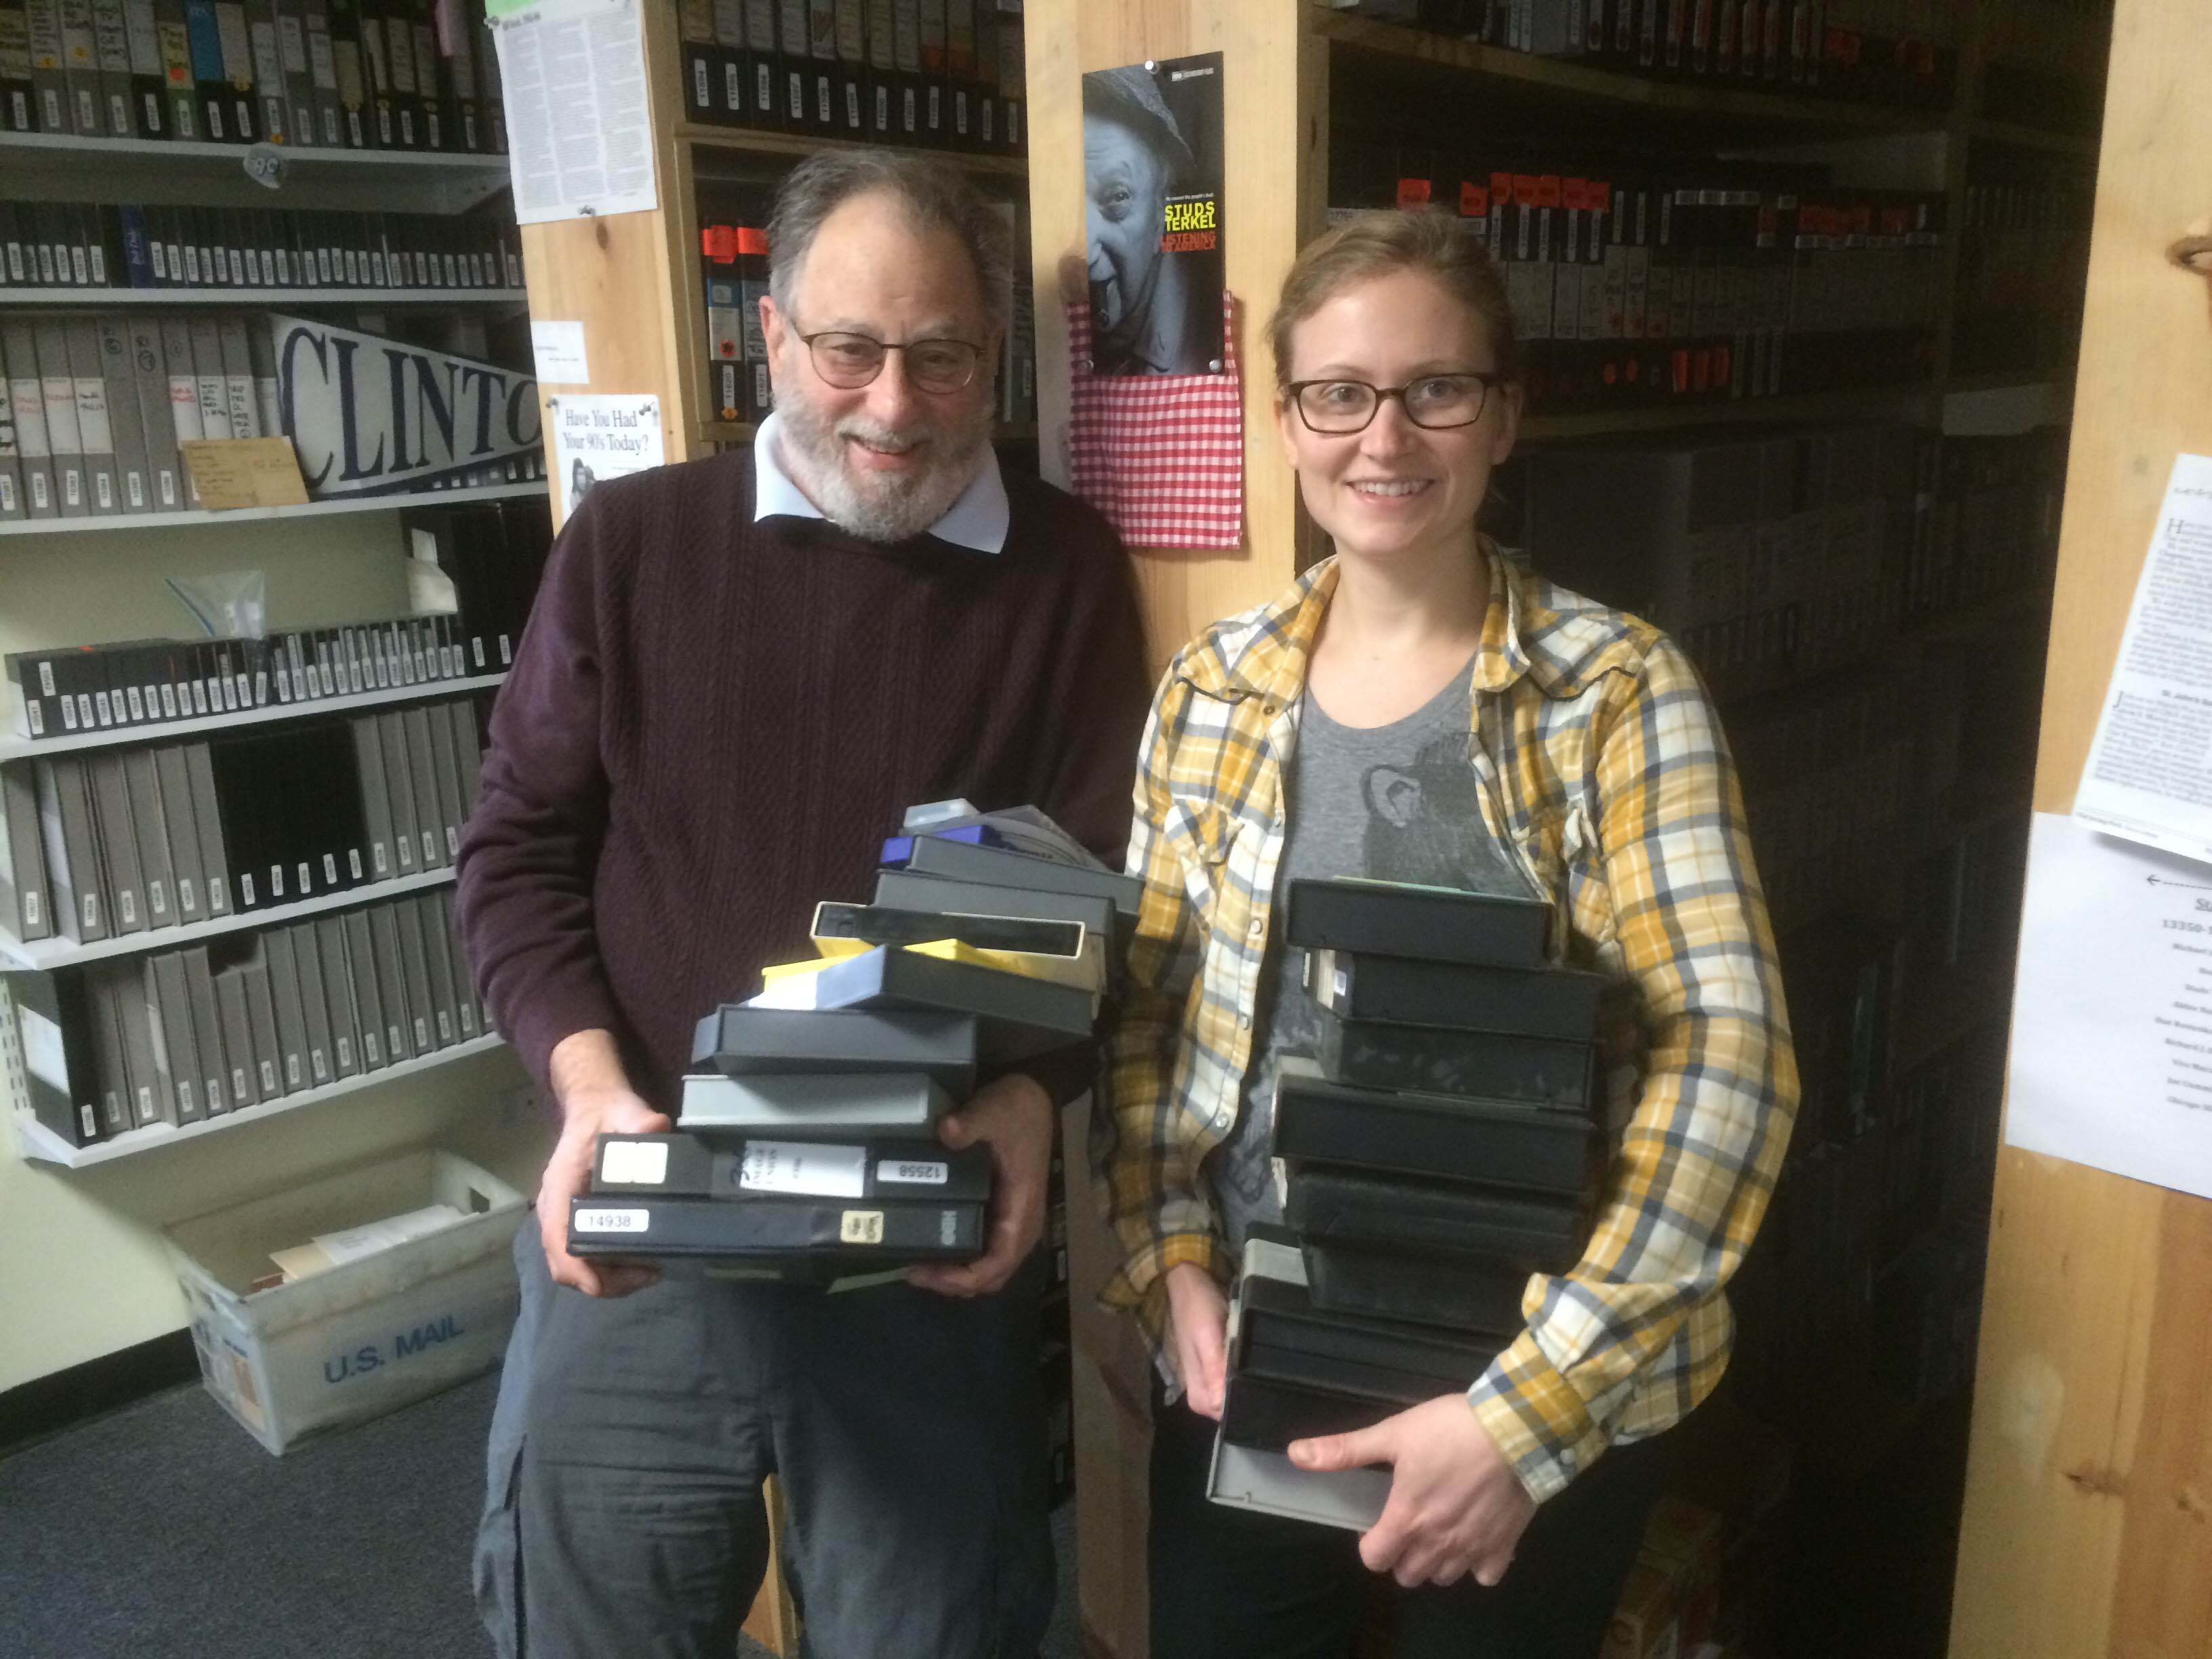 Sara Chapman and Tom Weinberg holding video tapes and moving them around as they move into their new office in 2014. They are standing in front of shelves holding more video tapes from the collection. Image courtesy of Media Burn.